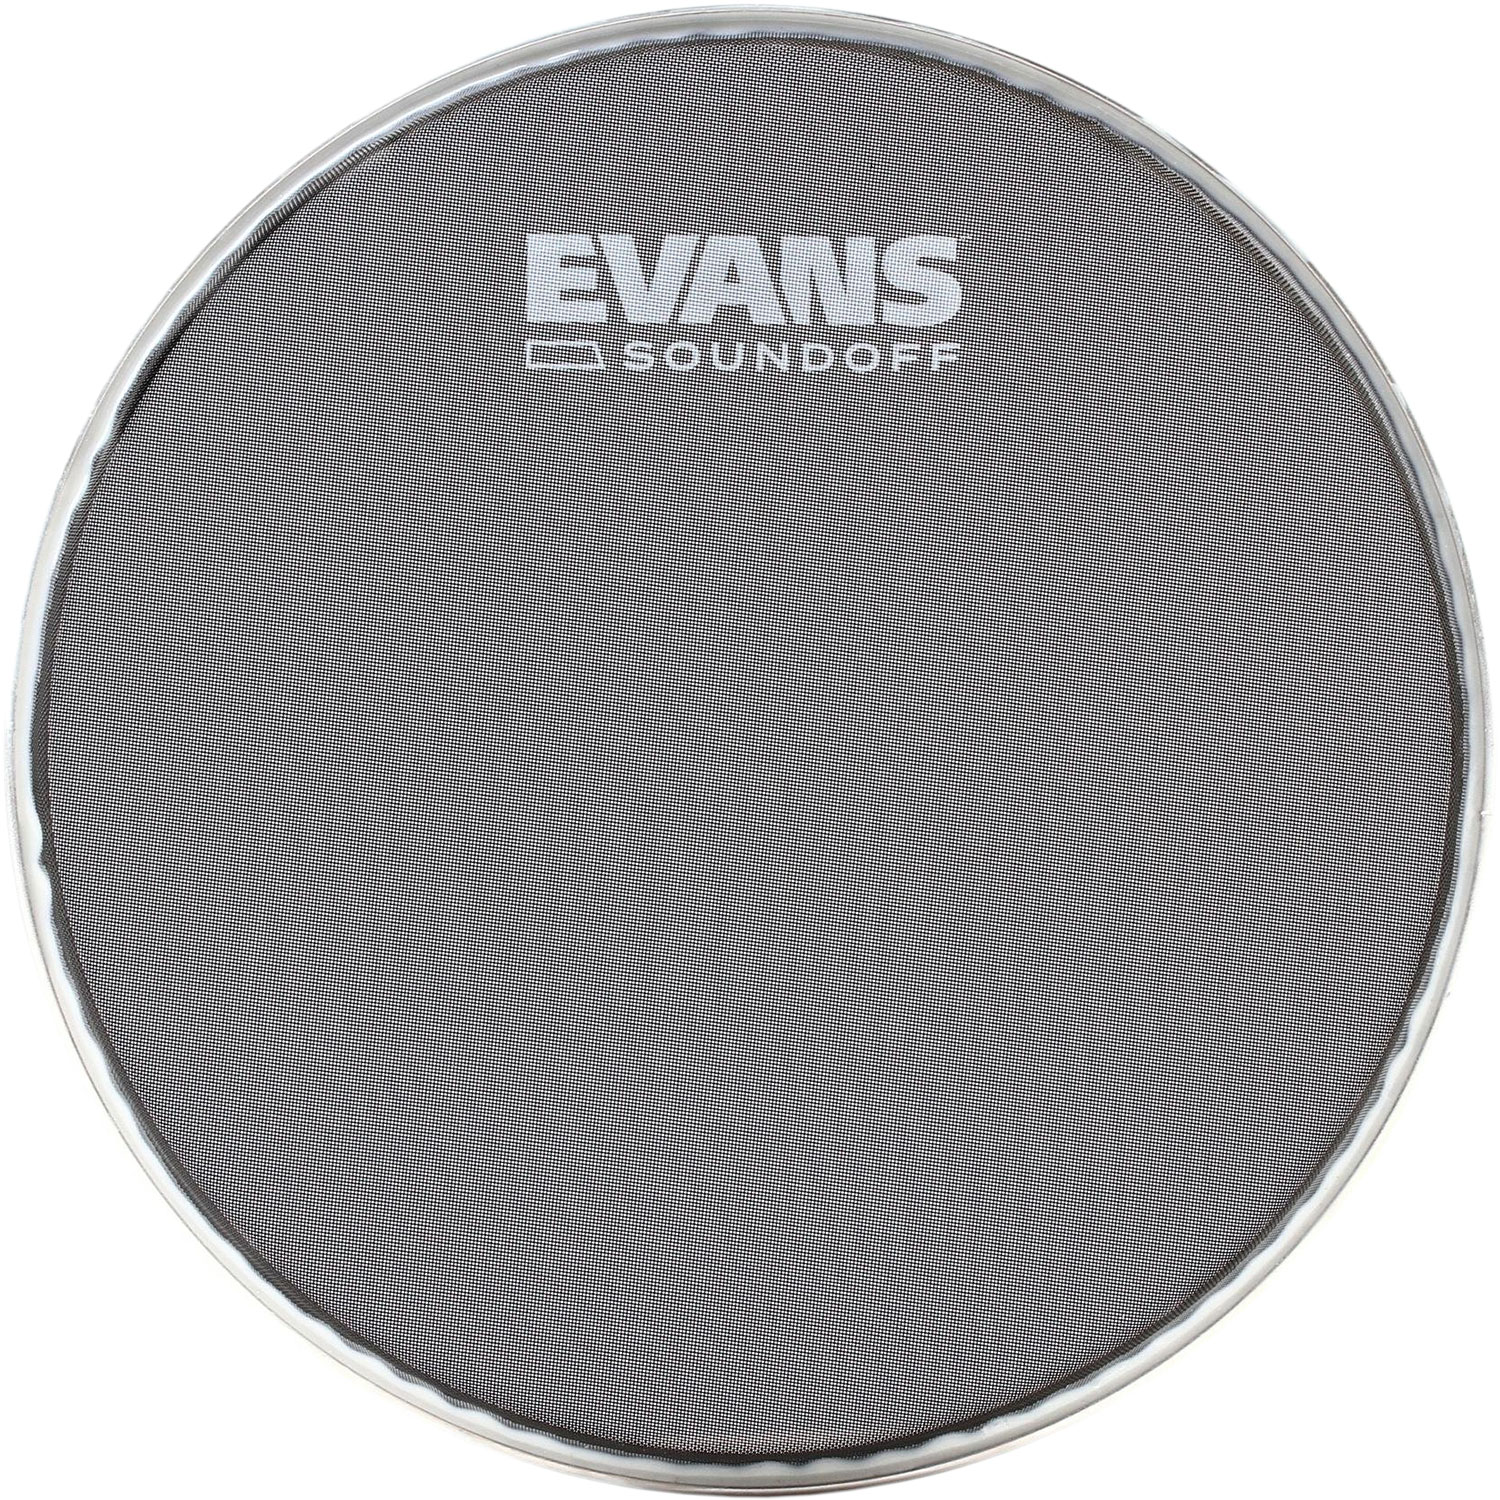 "Evans 15"" SoundOff Mesh Drum Head"